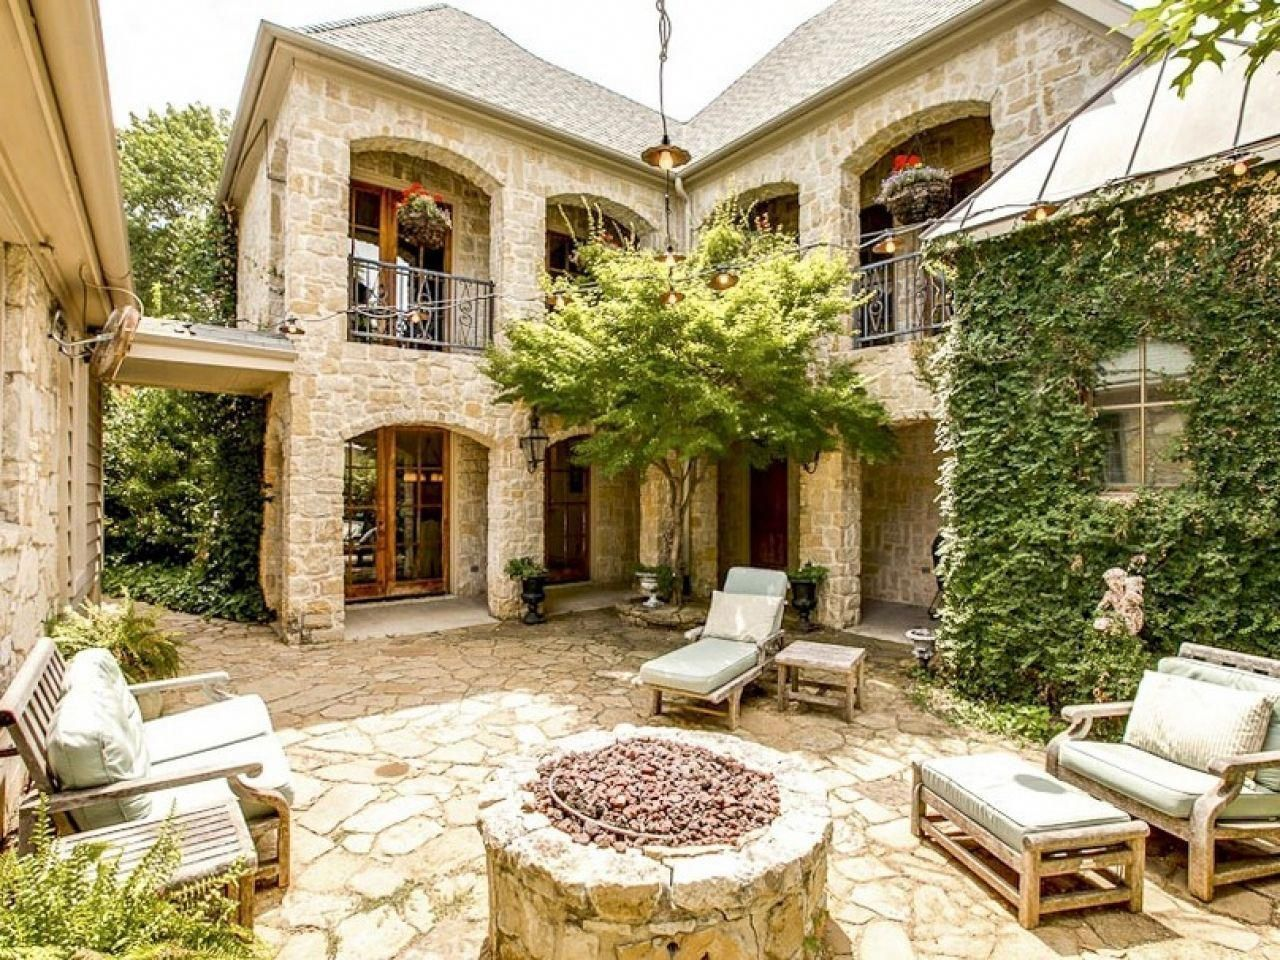 Small Spanish Style House Plans Spanish Style Home Plans With Courtyards Spanish Villa Hou Courtyard House Plans Spanish Style Homes Mediterranean House Plans